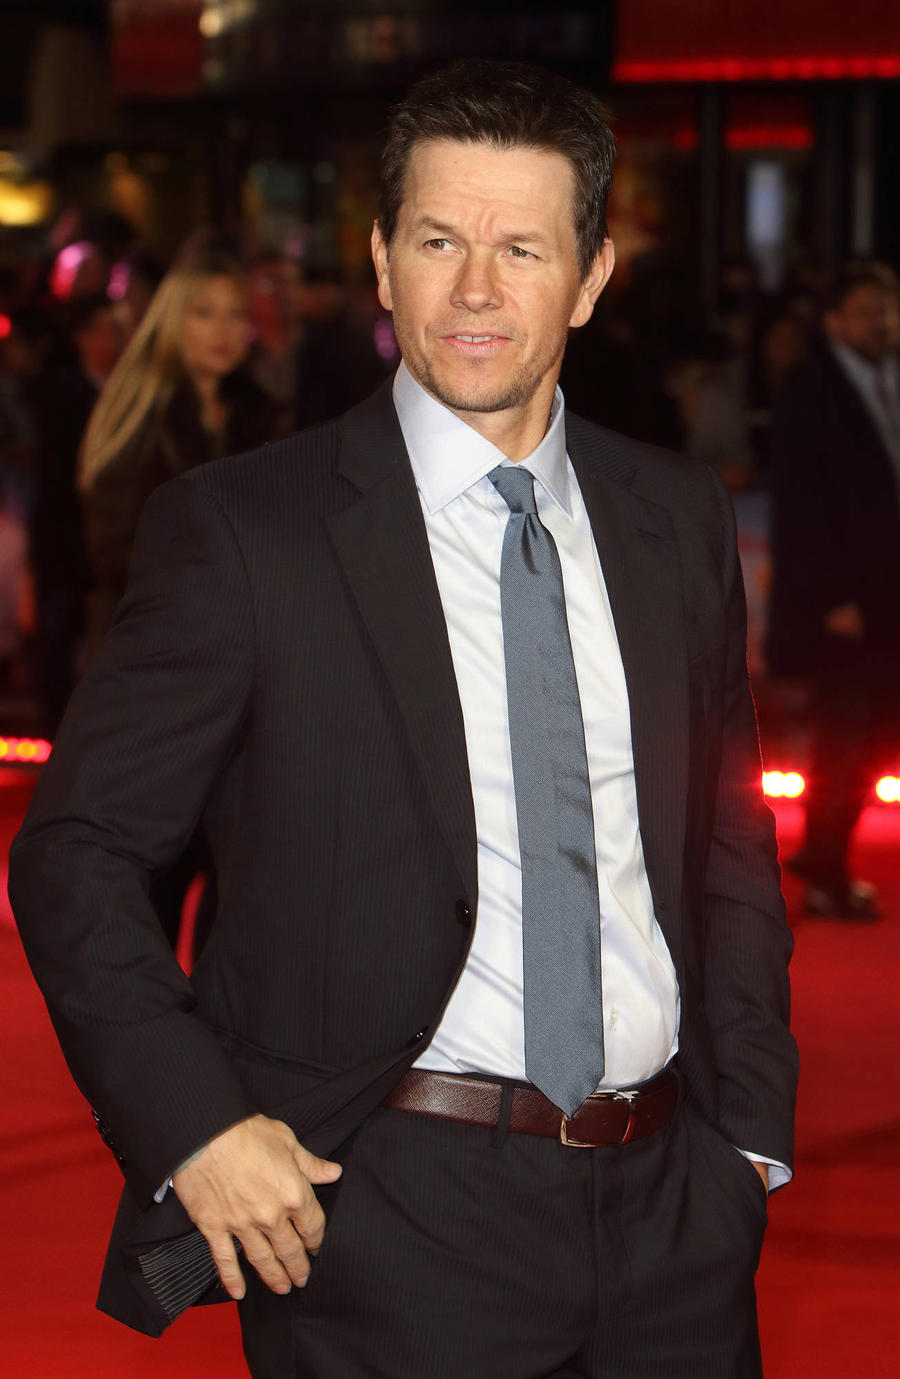 Mark Wahlberg Regrets Pardon Request